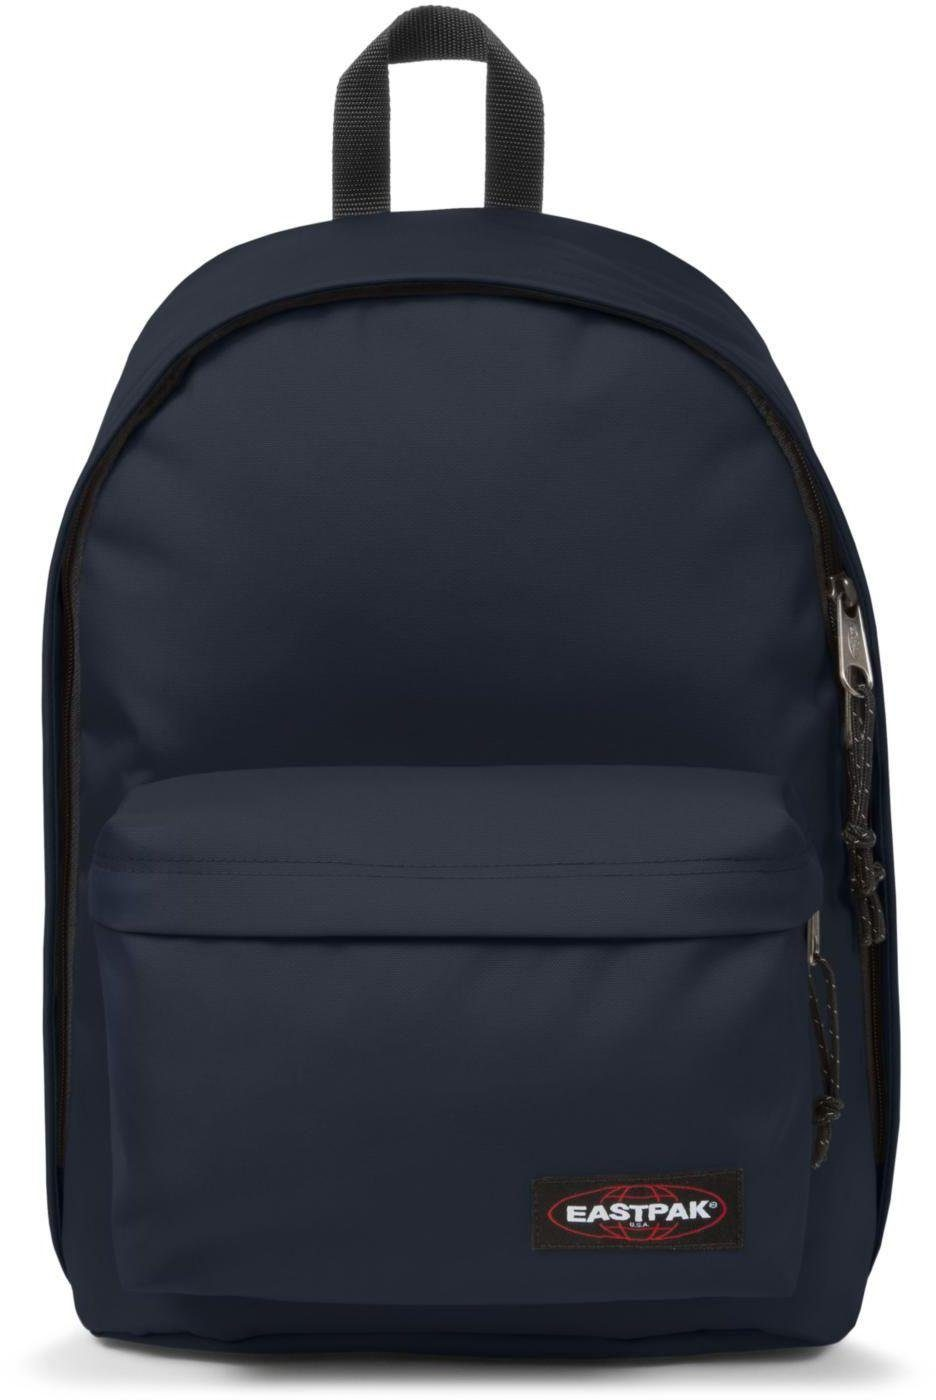 Eastpak Rucksack mit Laptopfach, »OUT OF OFFICE cloud navy«